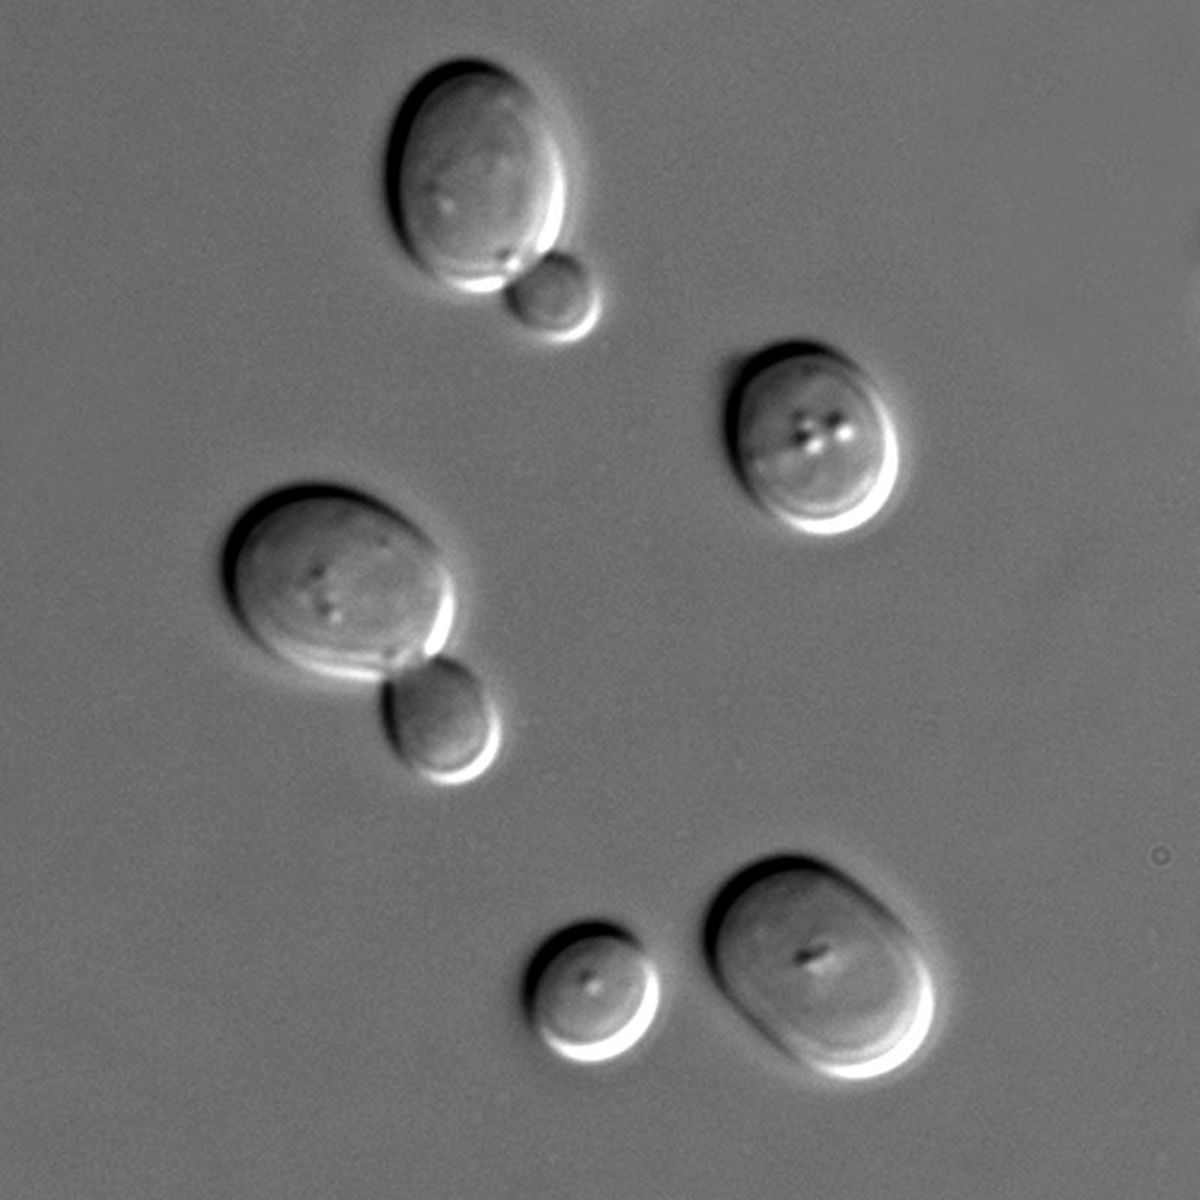 This image of yeasts was taken using a high-powered microscope. Yeasts are used in brewing and baking because their anaerobic respiration process produces ethanol (which makes beer alcoholic) and carbon dioxide (which makes bread rise)